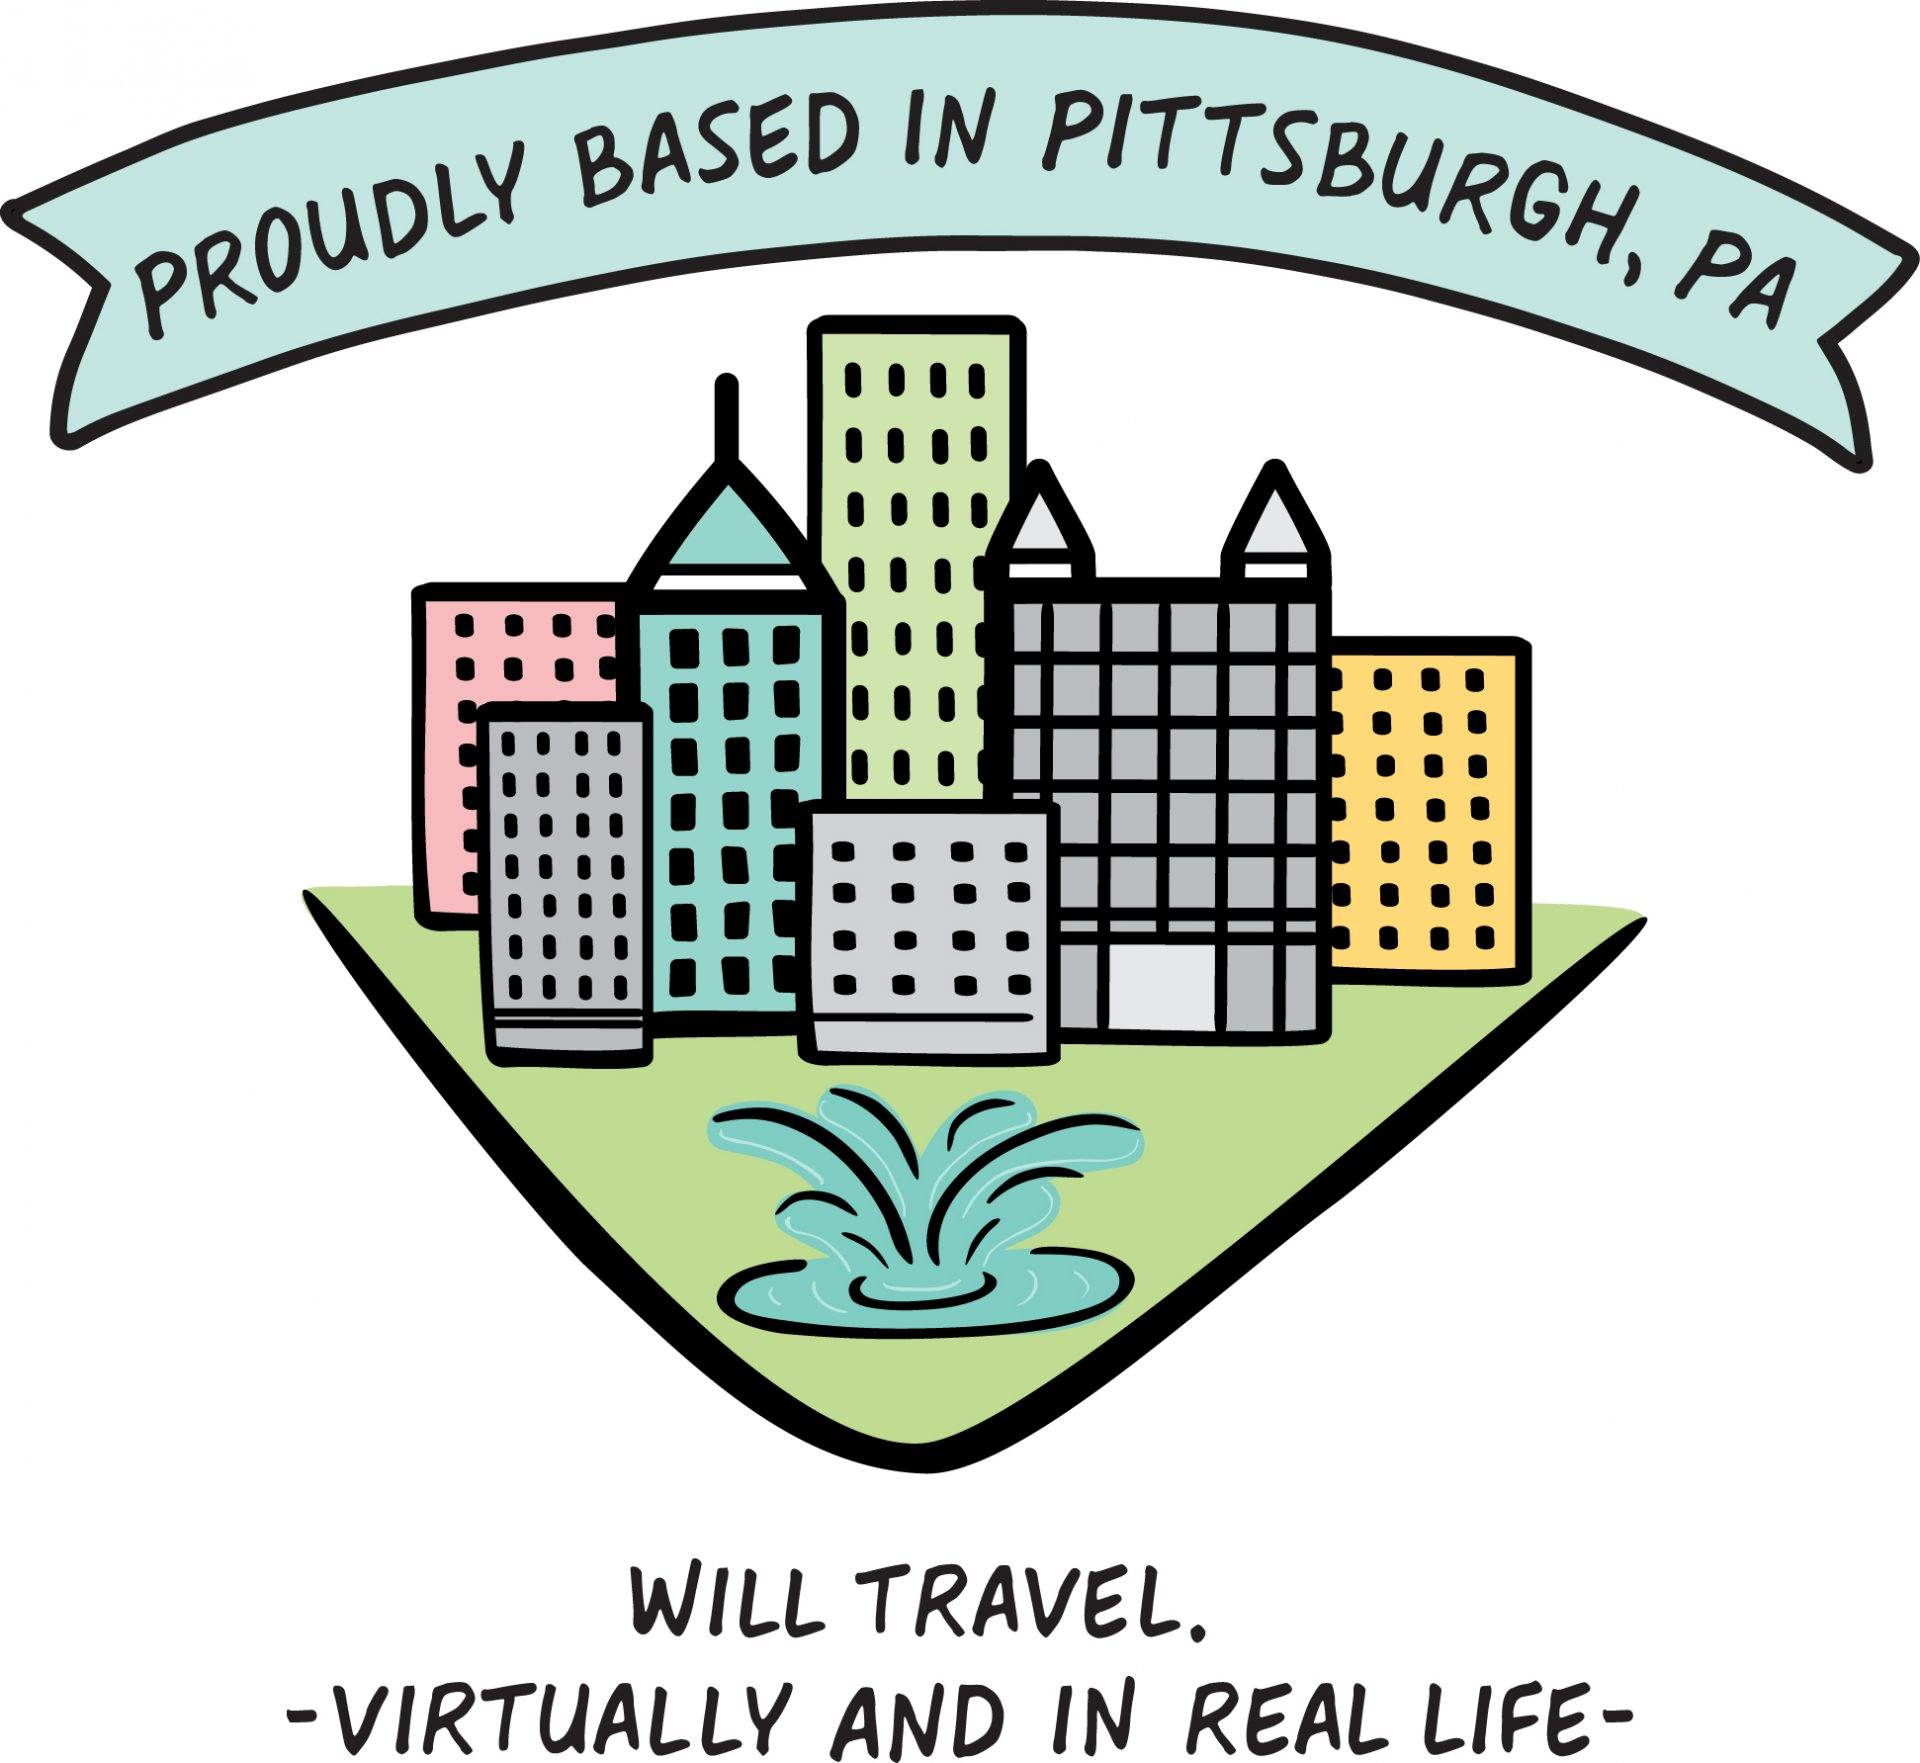 PittsburghProud_noFooter